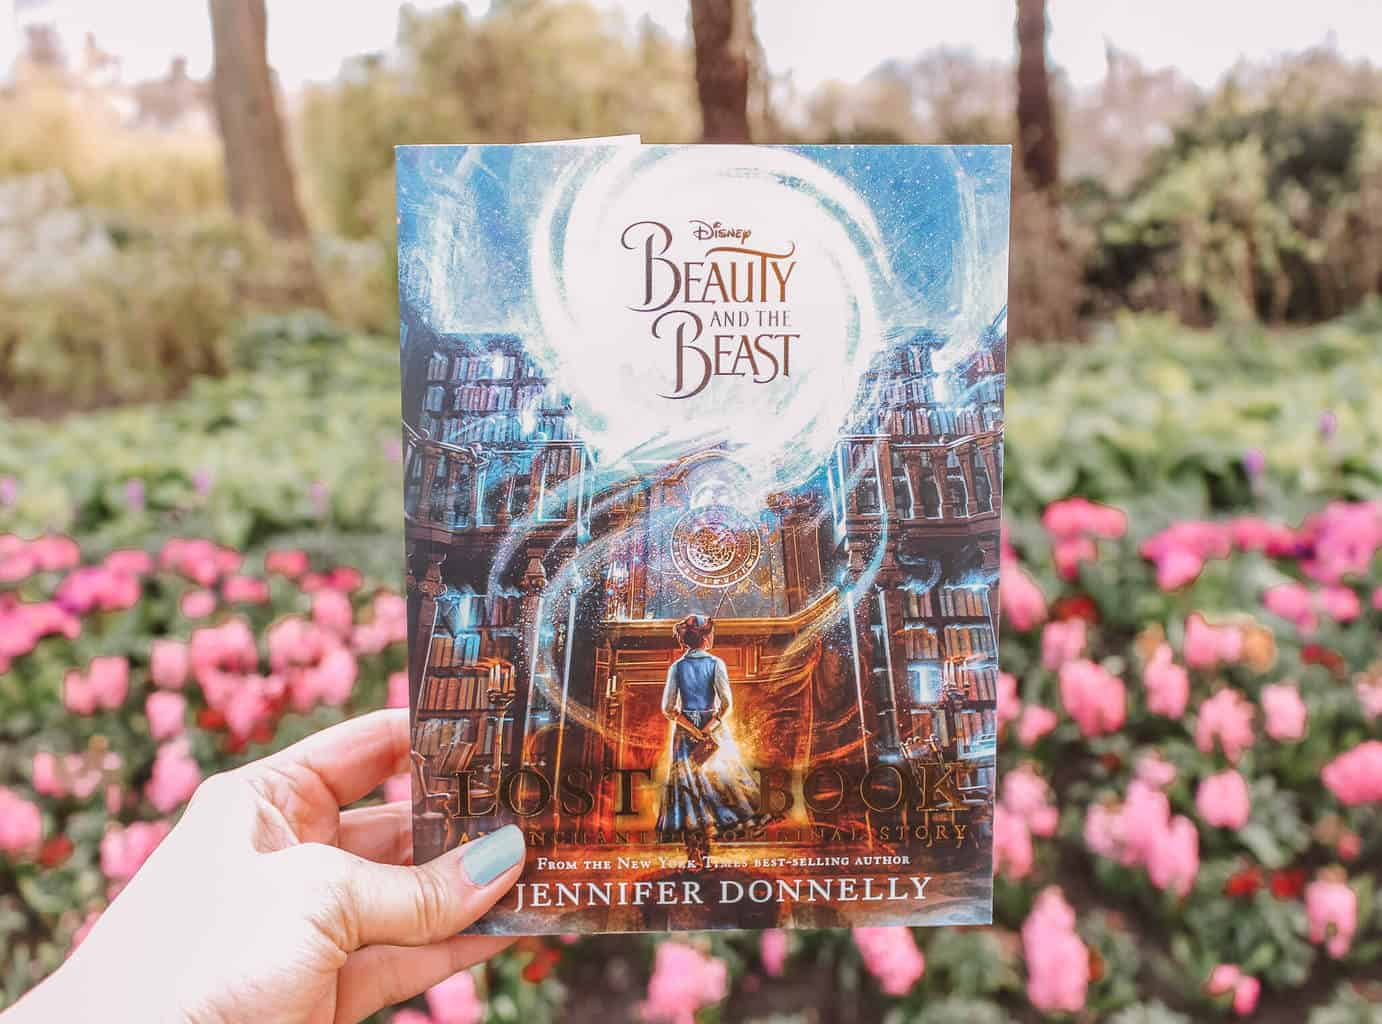 Book Review: Lost in a Book by Jennifer Donnelly. A Beauty in the Beast Retelling.